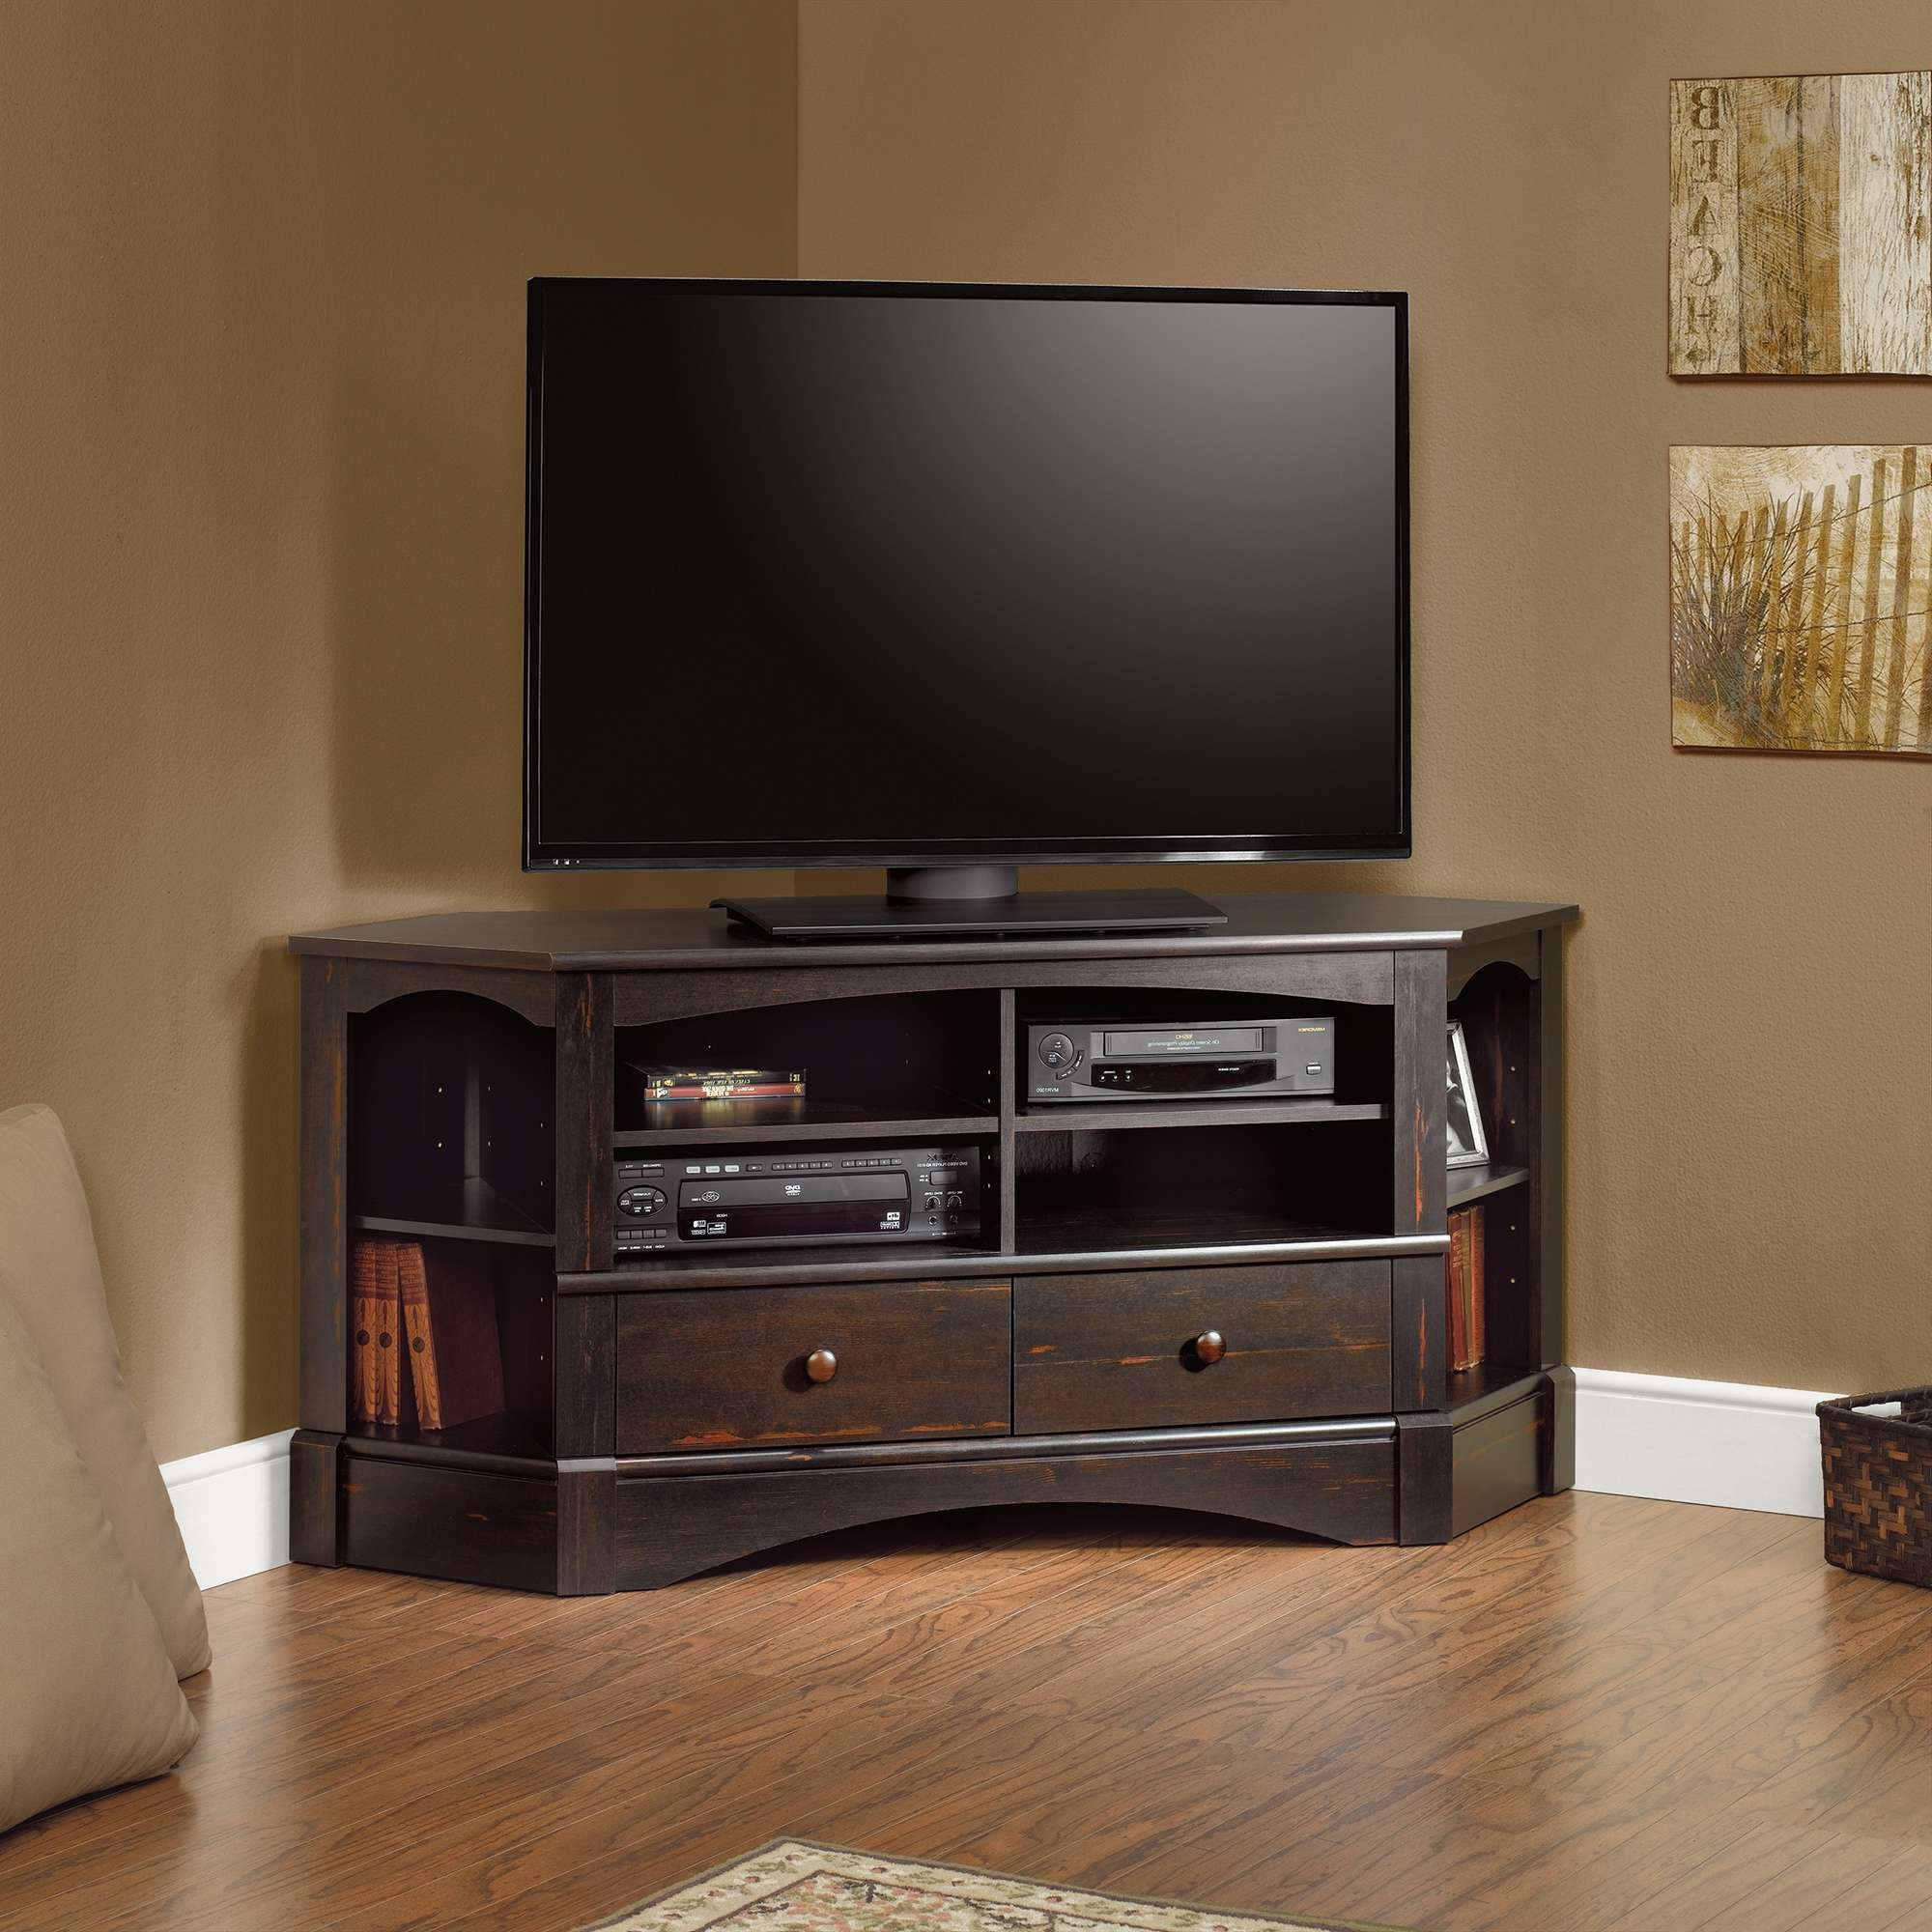 Small Corner Tv Stand White Stands Trends Also Images Intended For Small Corner Tv Stands (View 6 of 20)